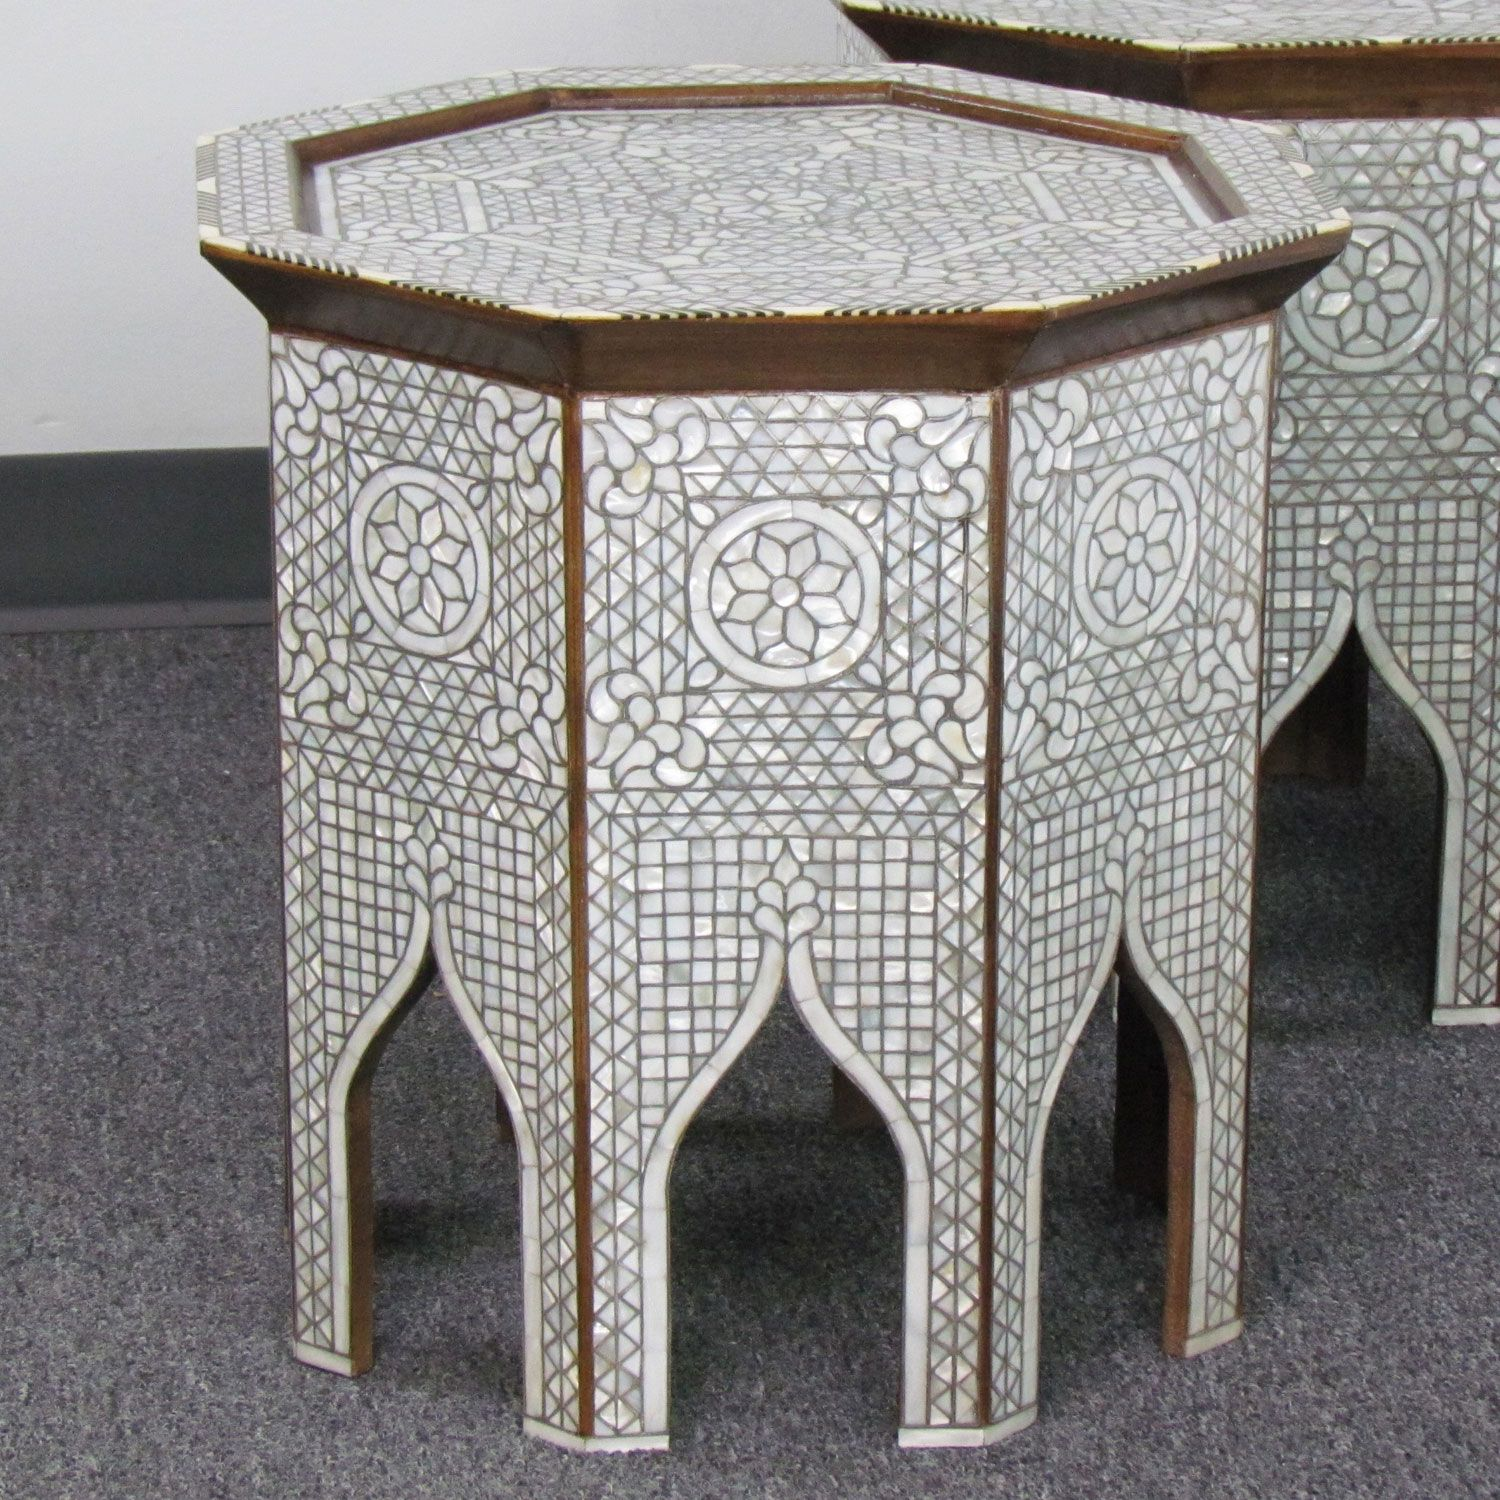 Id 790 Side Table Inlaid With Mother Of Pearl 이미지 포함